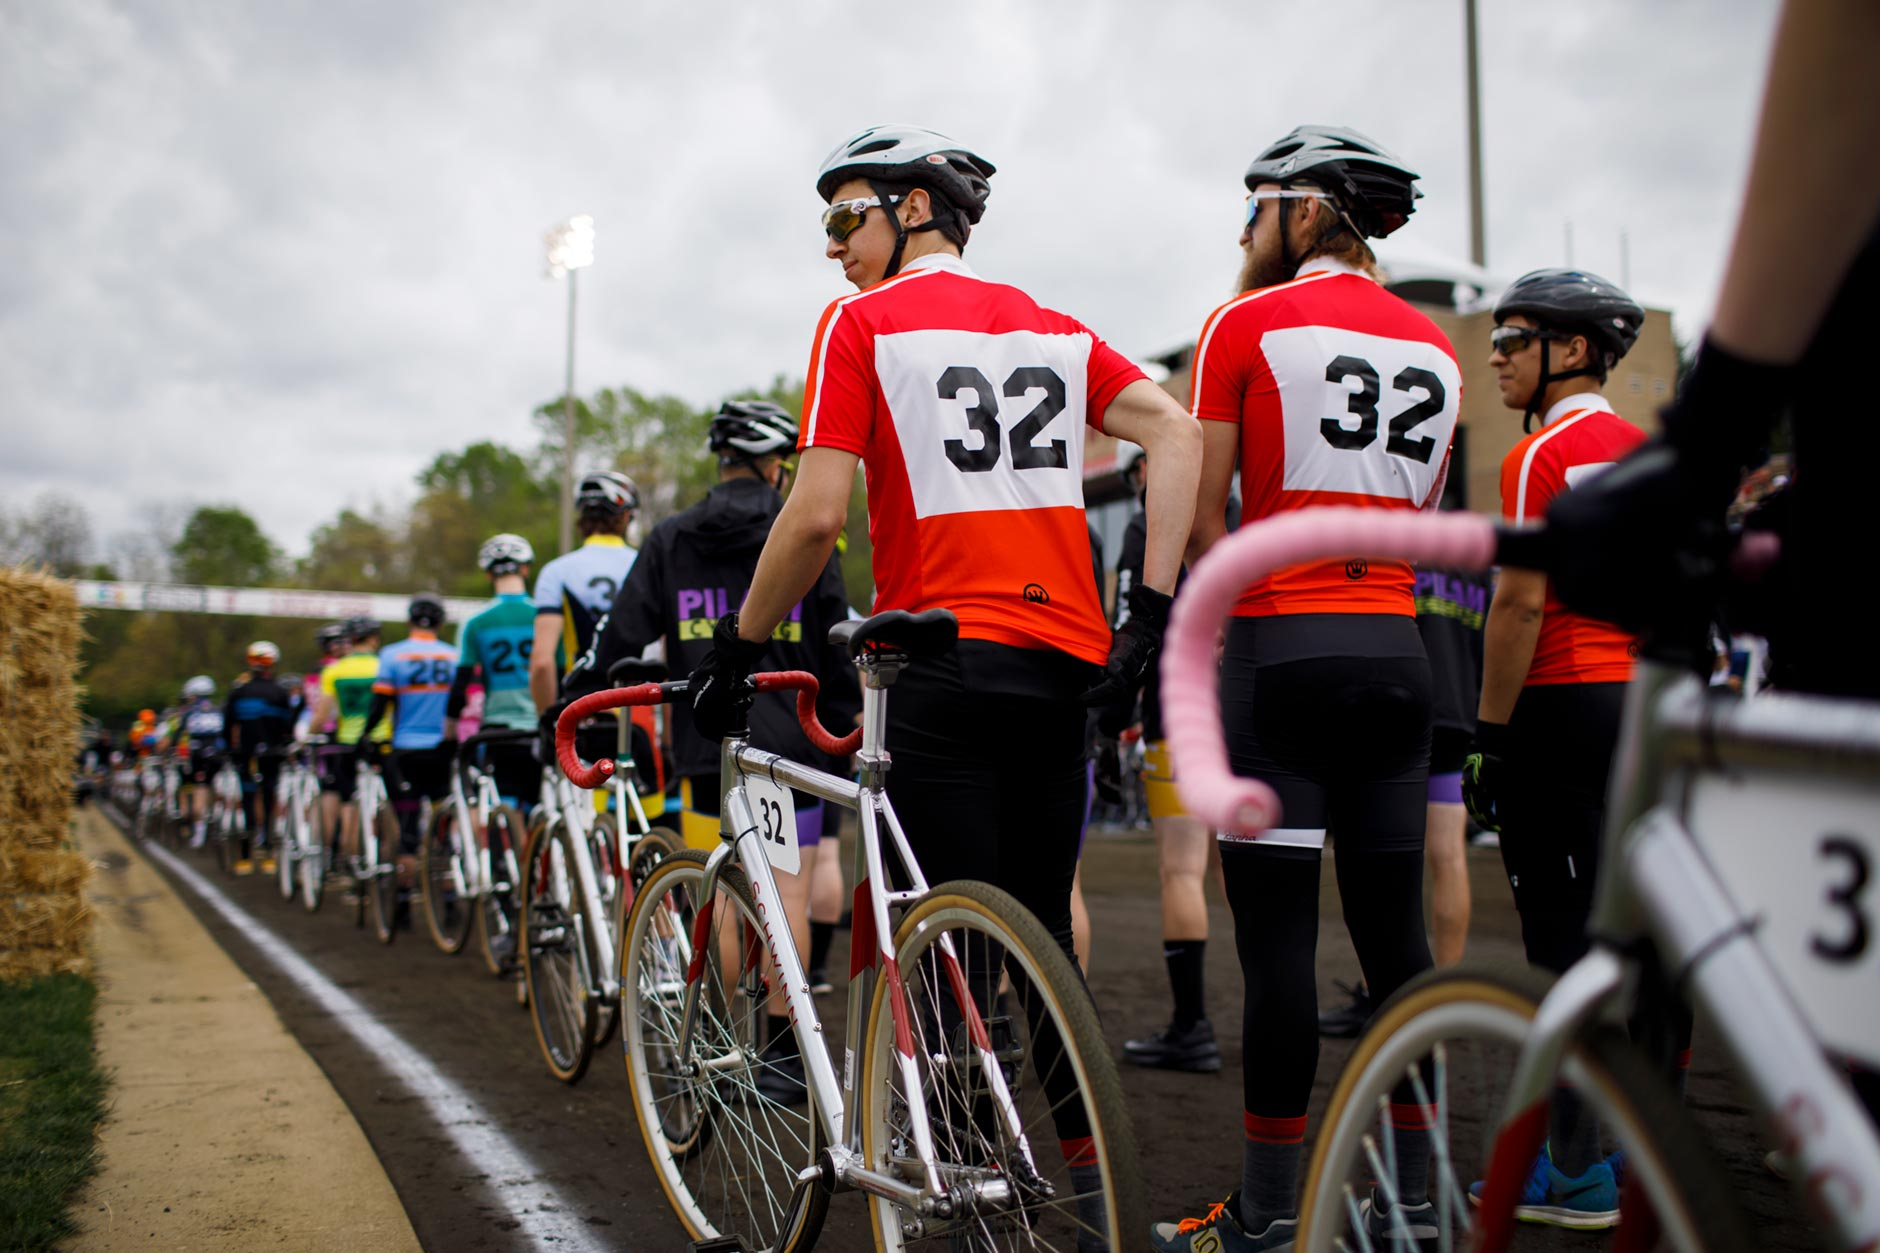 Riders wait in line for team introductions before the start of the Men's Little 500 at Bill Armstrong Stadium on Saturday, April 22, 2017. (James Brosher/IU Communications)